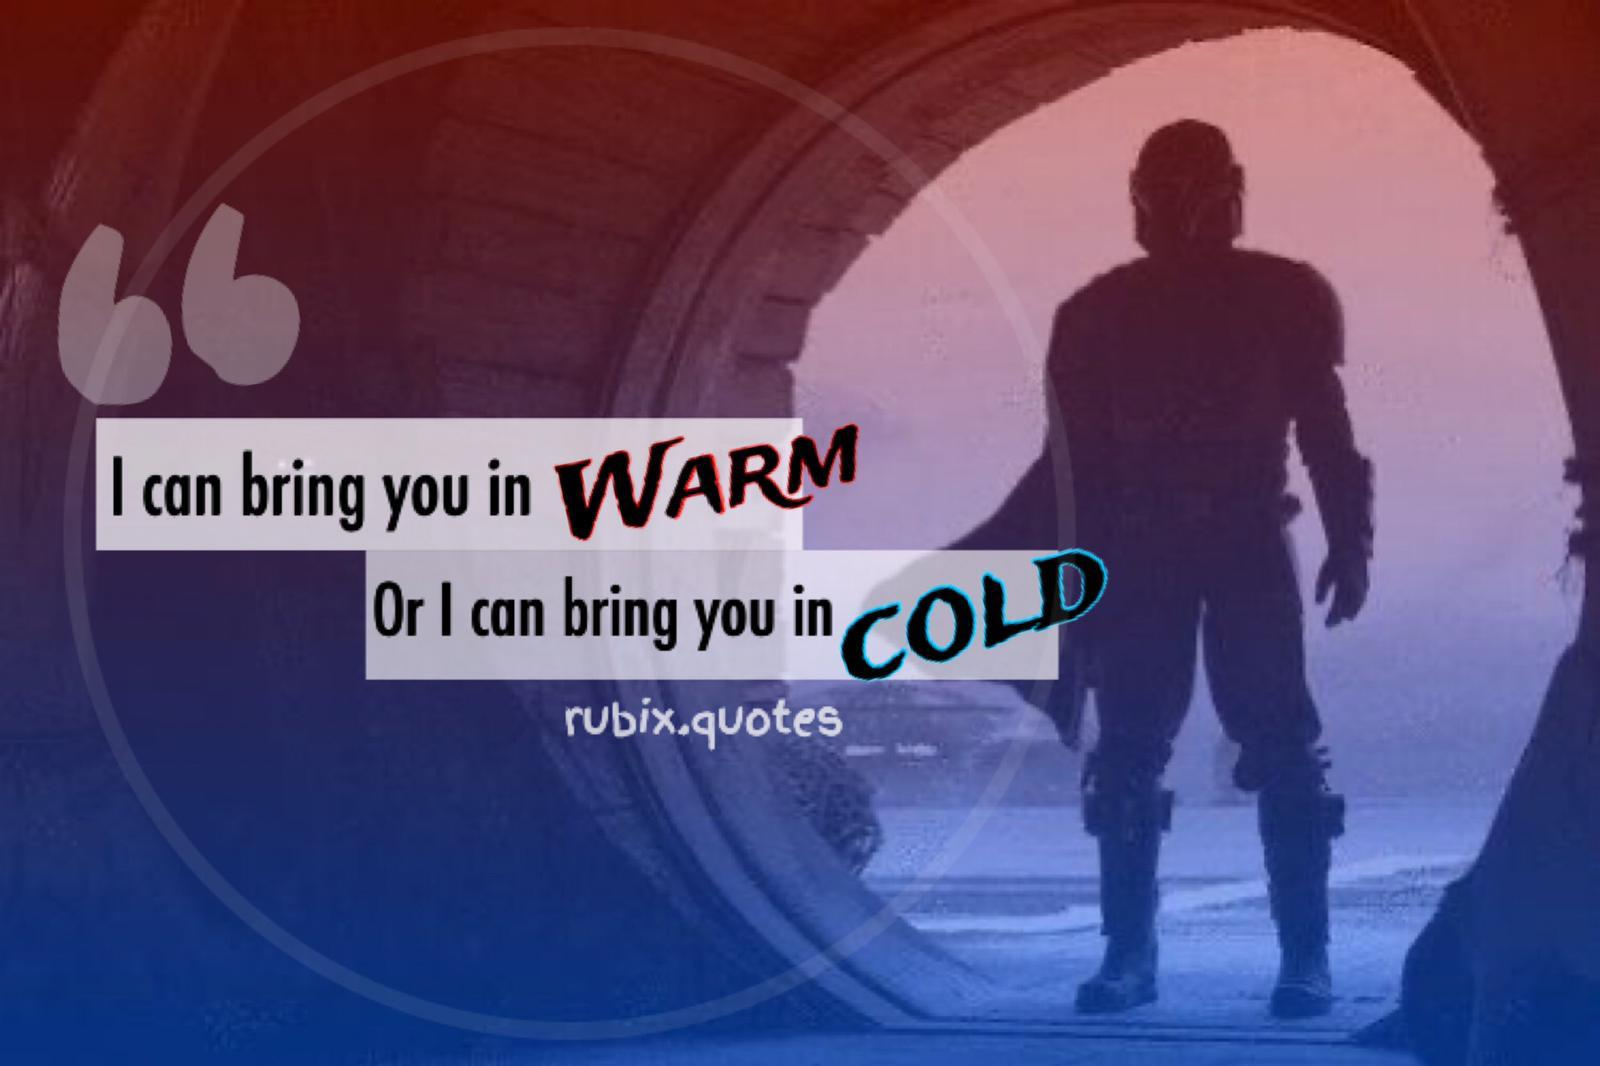 'I can bring you in warm, or I can bring you in cold' – The Mandalorian [1600×1066]